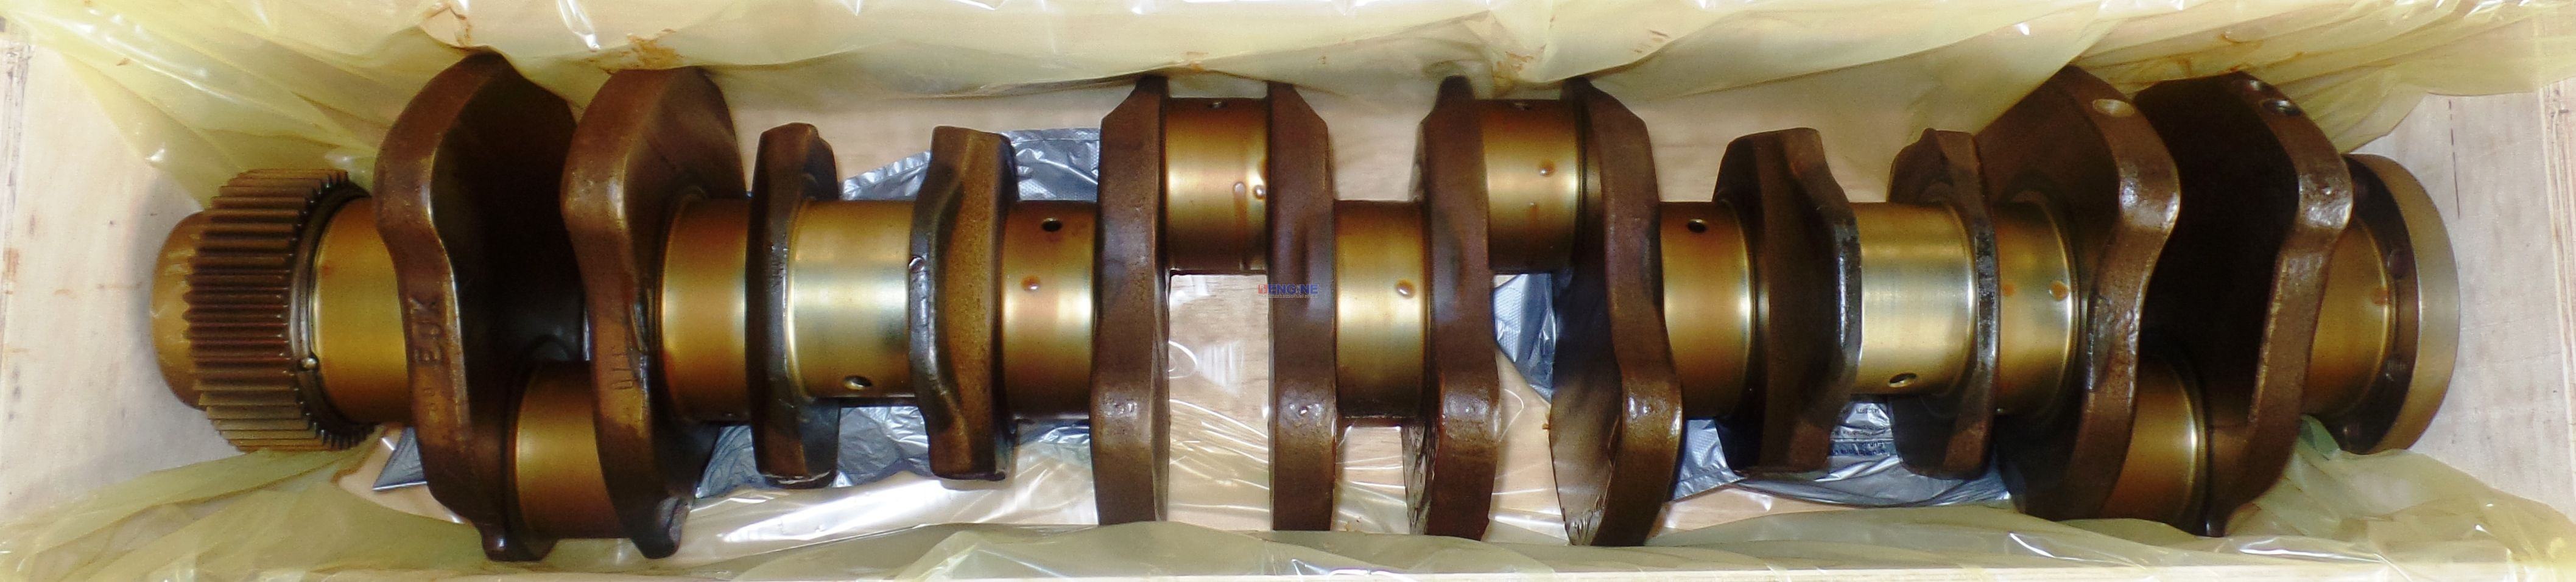 190615083156 as well Caterpillar Ct C13 Crankshaft 3133997 2219364 Stroke 6 1811 Rod 3 5031 3 together with Fuel Injection System F 720 057 together with Caterpillar Ct 3208 Engine Block Good Used 9n3758 V8 Cyl Dsl Truck together with Fuel Line Assembly F 720 073. on caterpillar engine overhaul kits